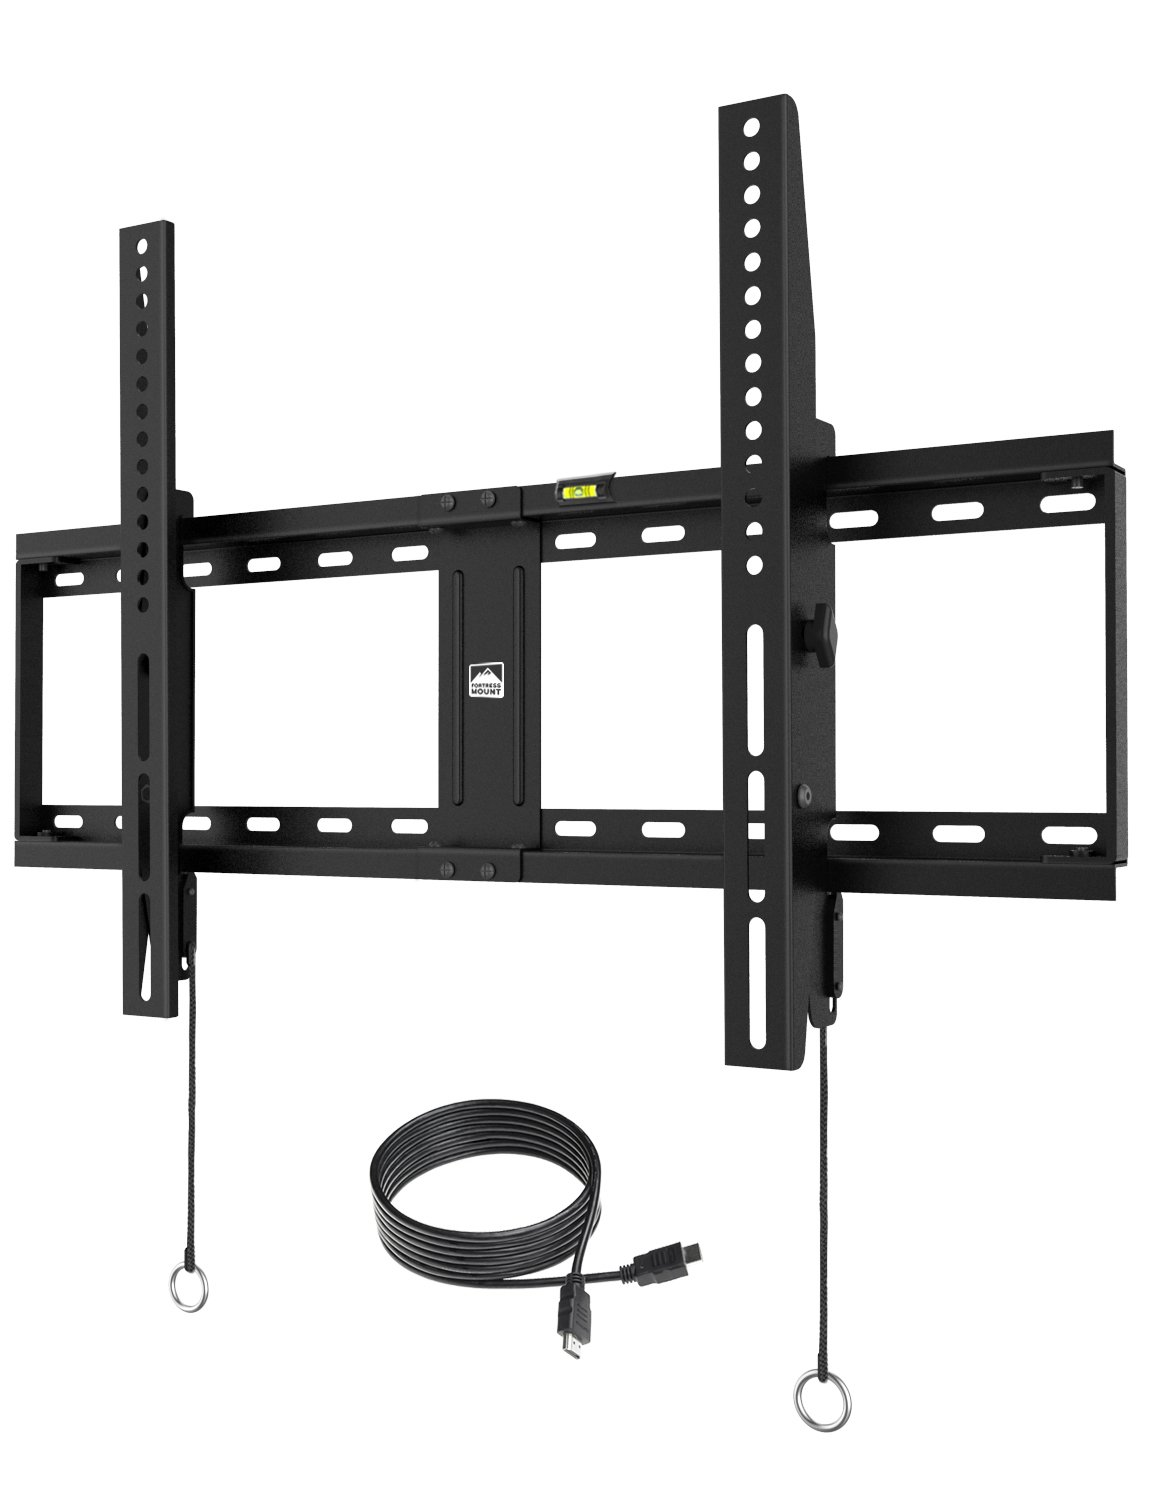 Fortress Mount TV Wall Mount for most 40-75'' TVs up to 165 lbs with 9-feet HDMI Cable (2018 Edition)